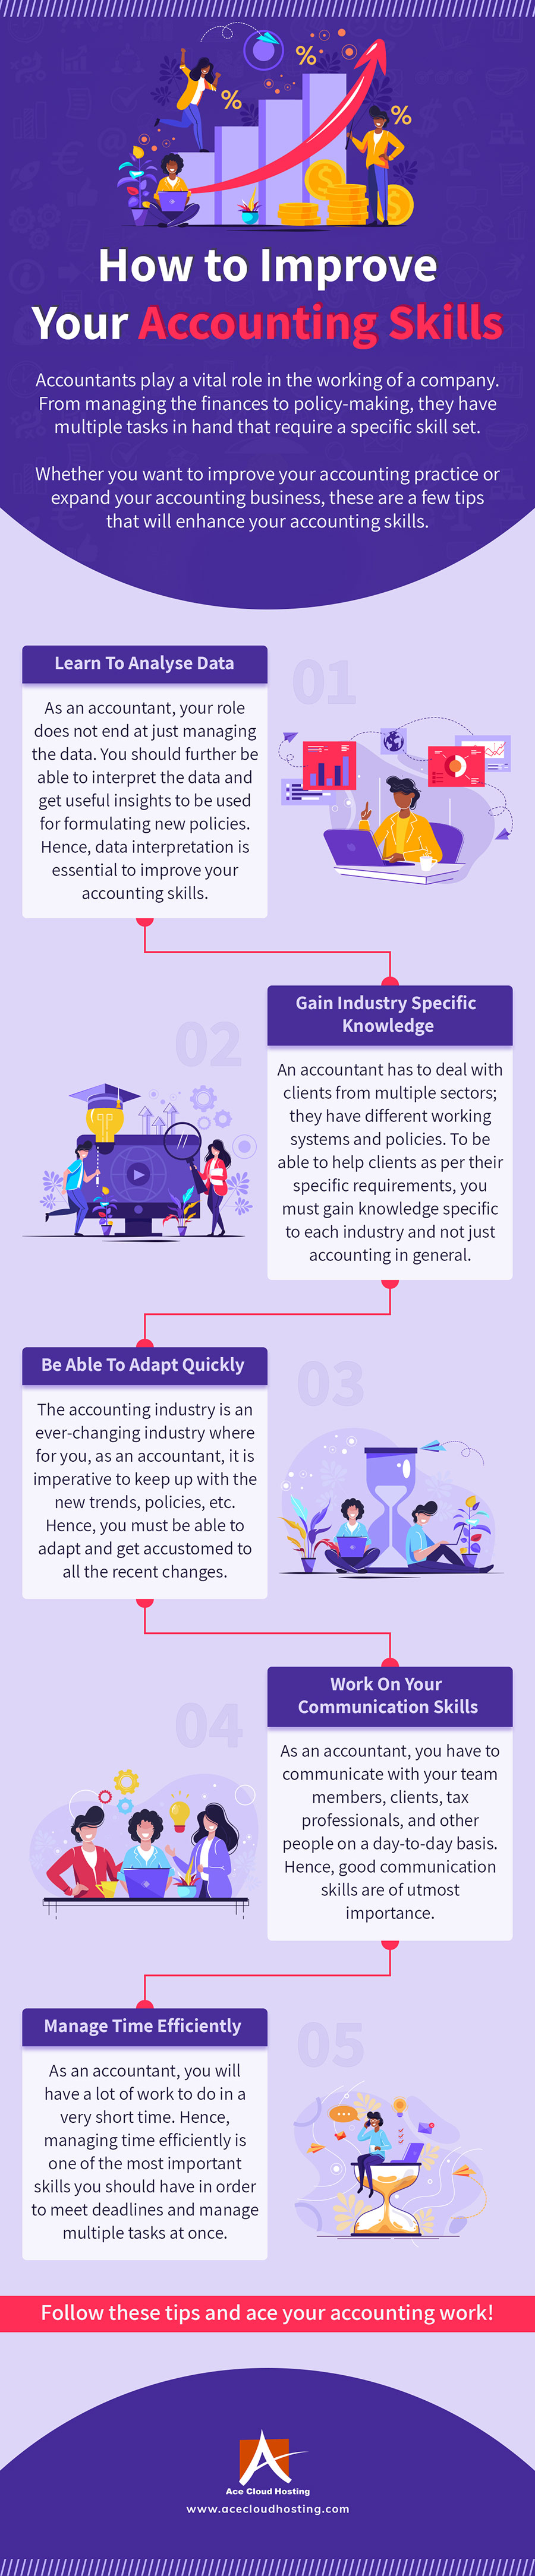 How To Improve Your Accounting Skills [Infographic]